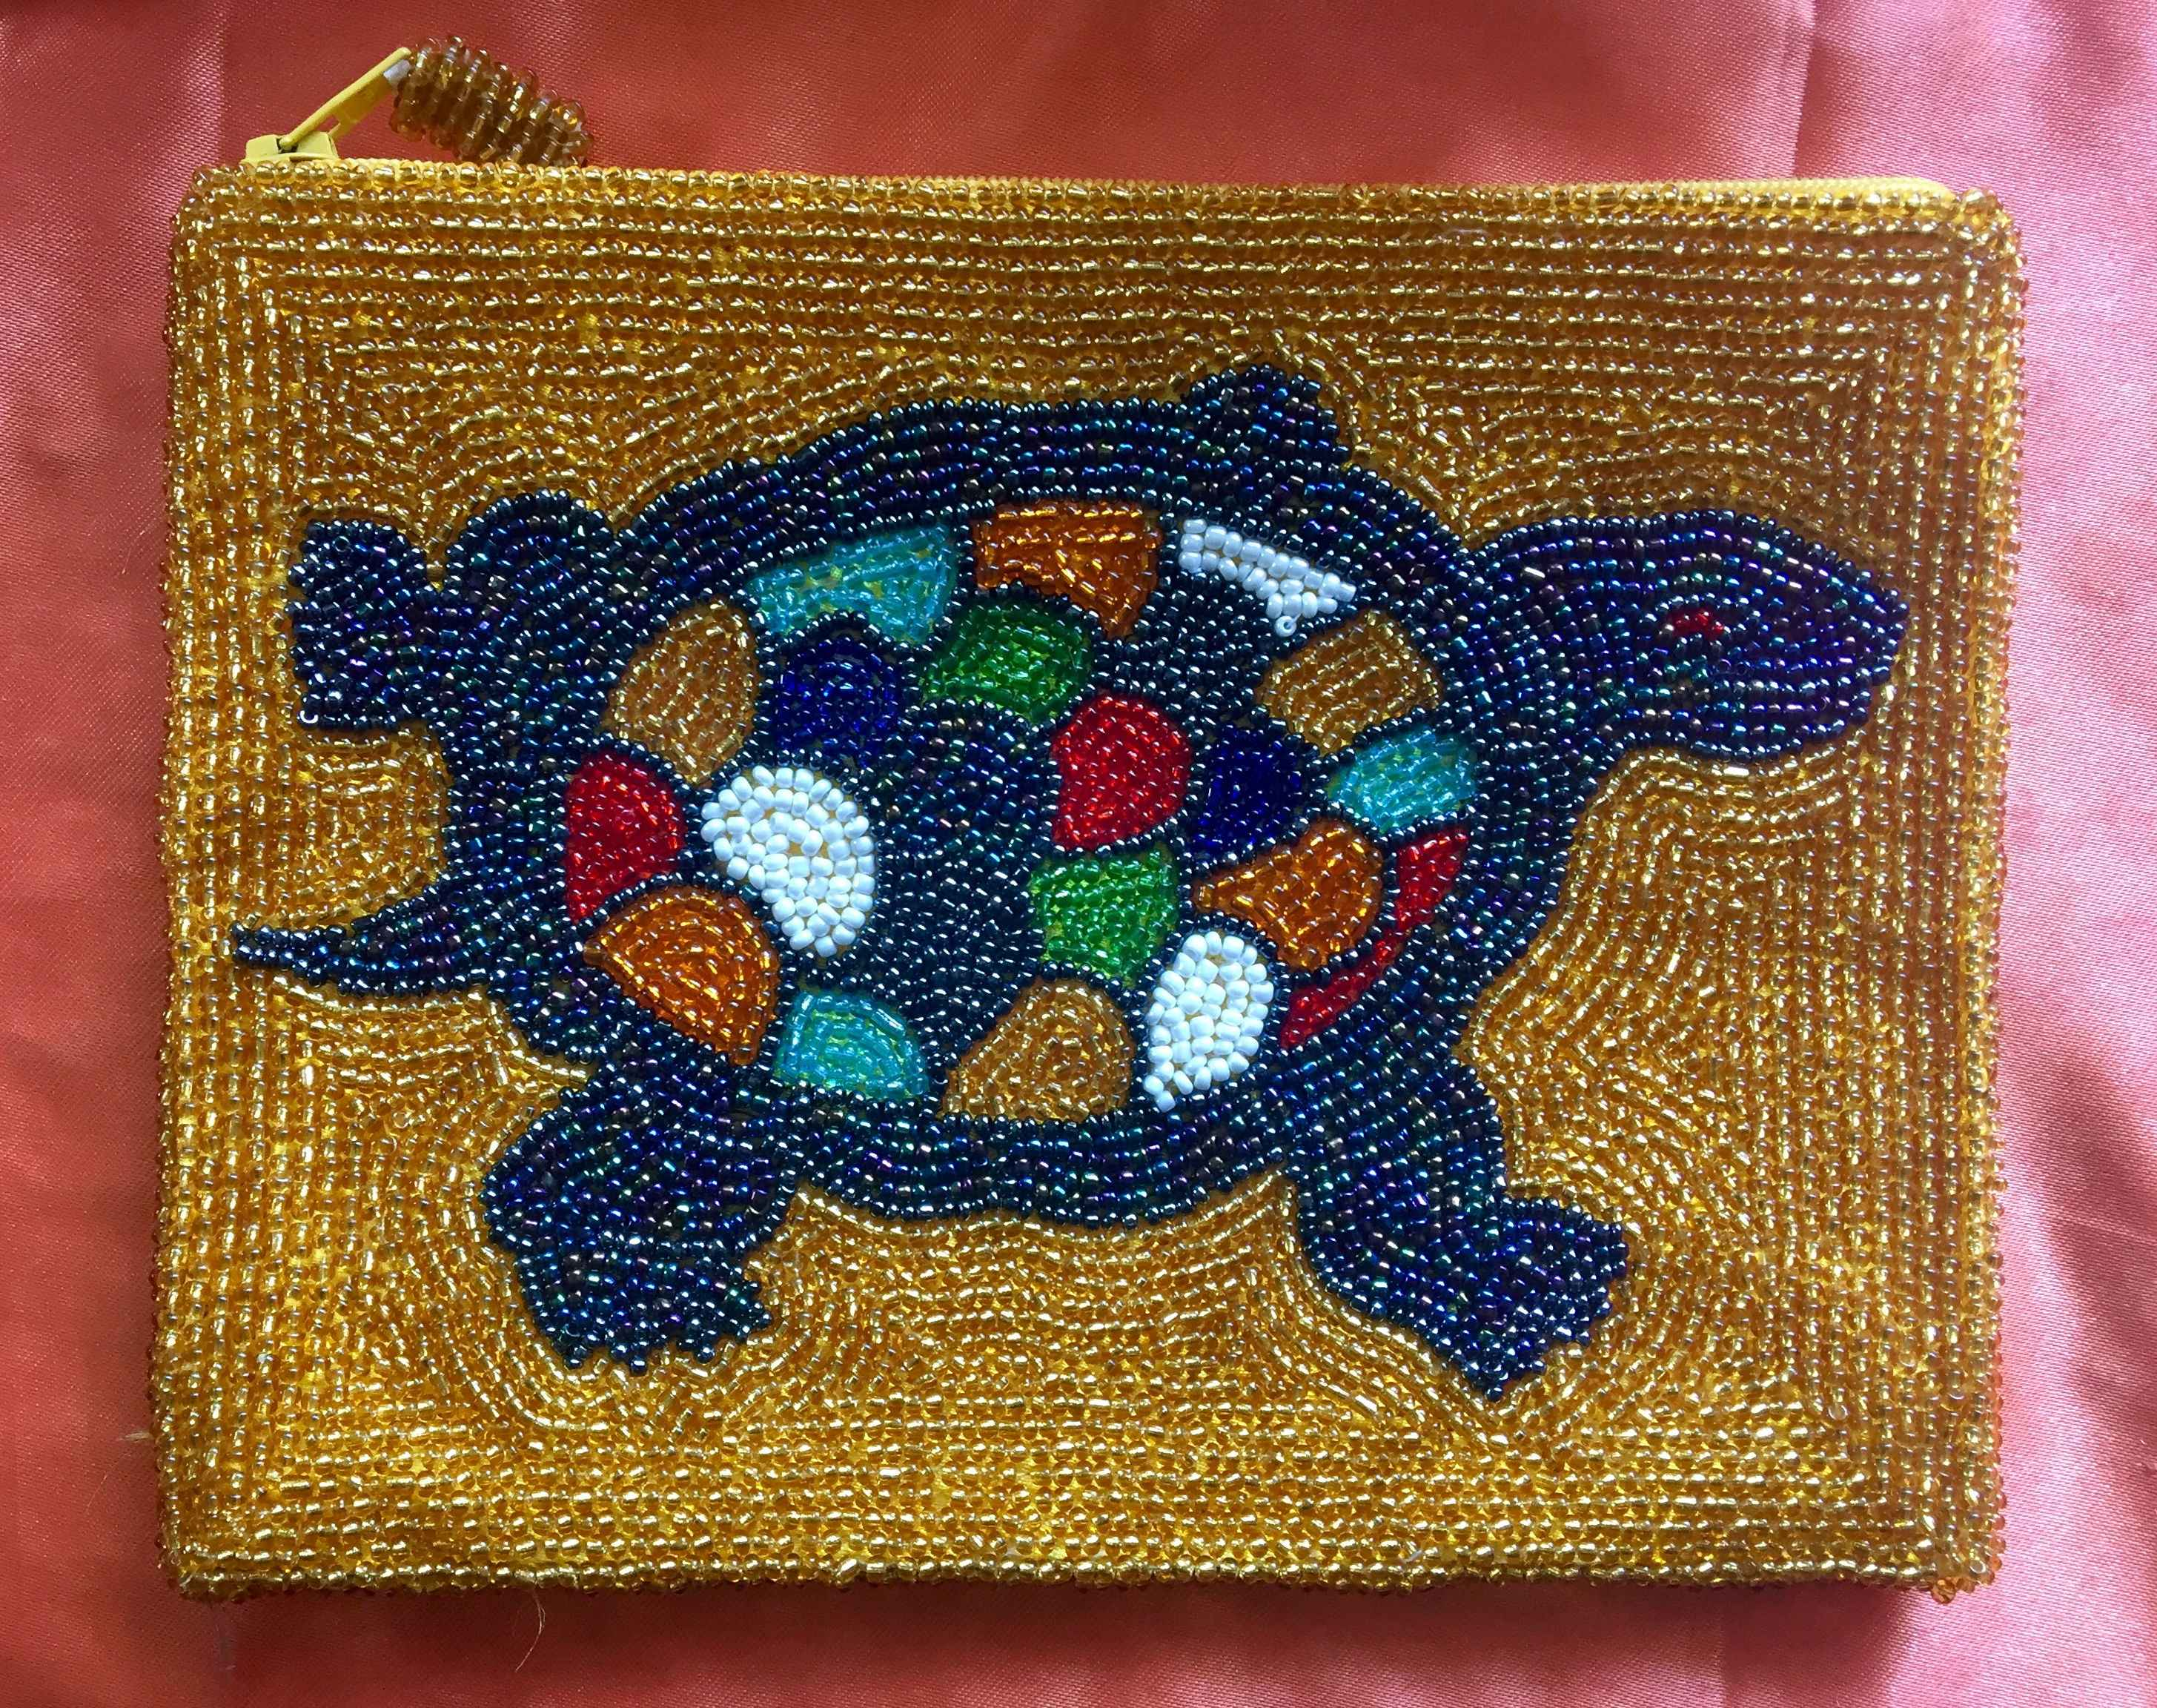 Turtle by  Roudy AZOR - Masterpiece Online